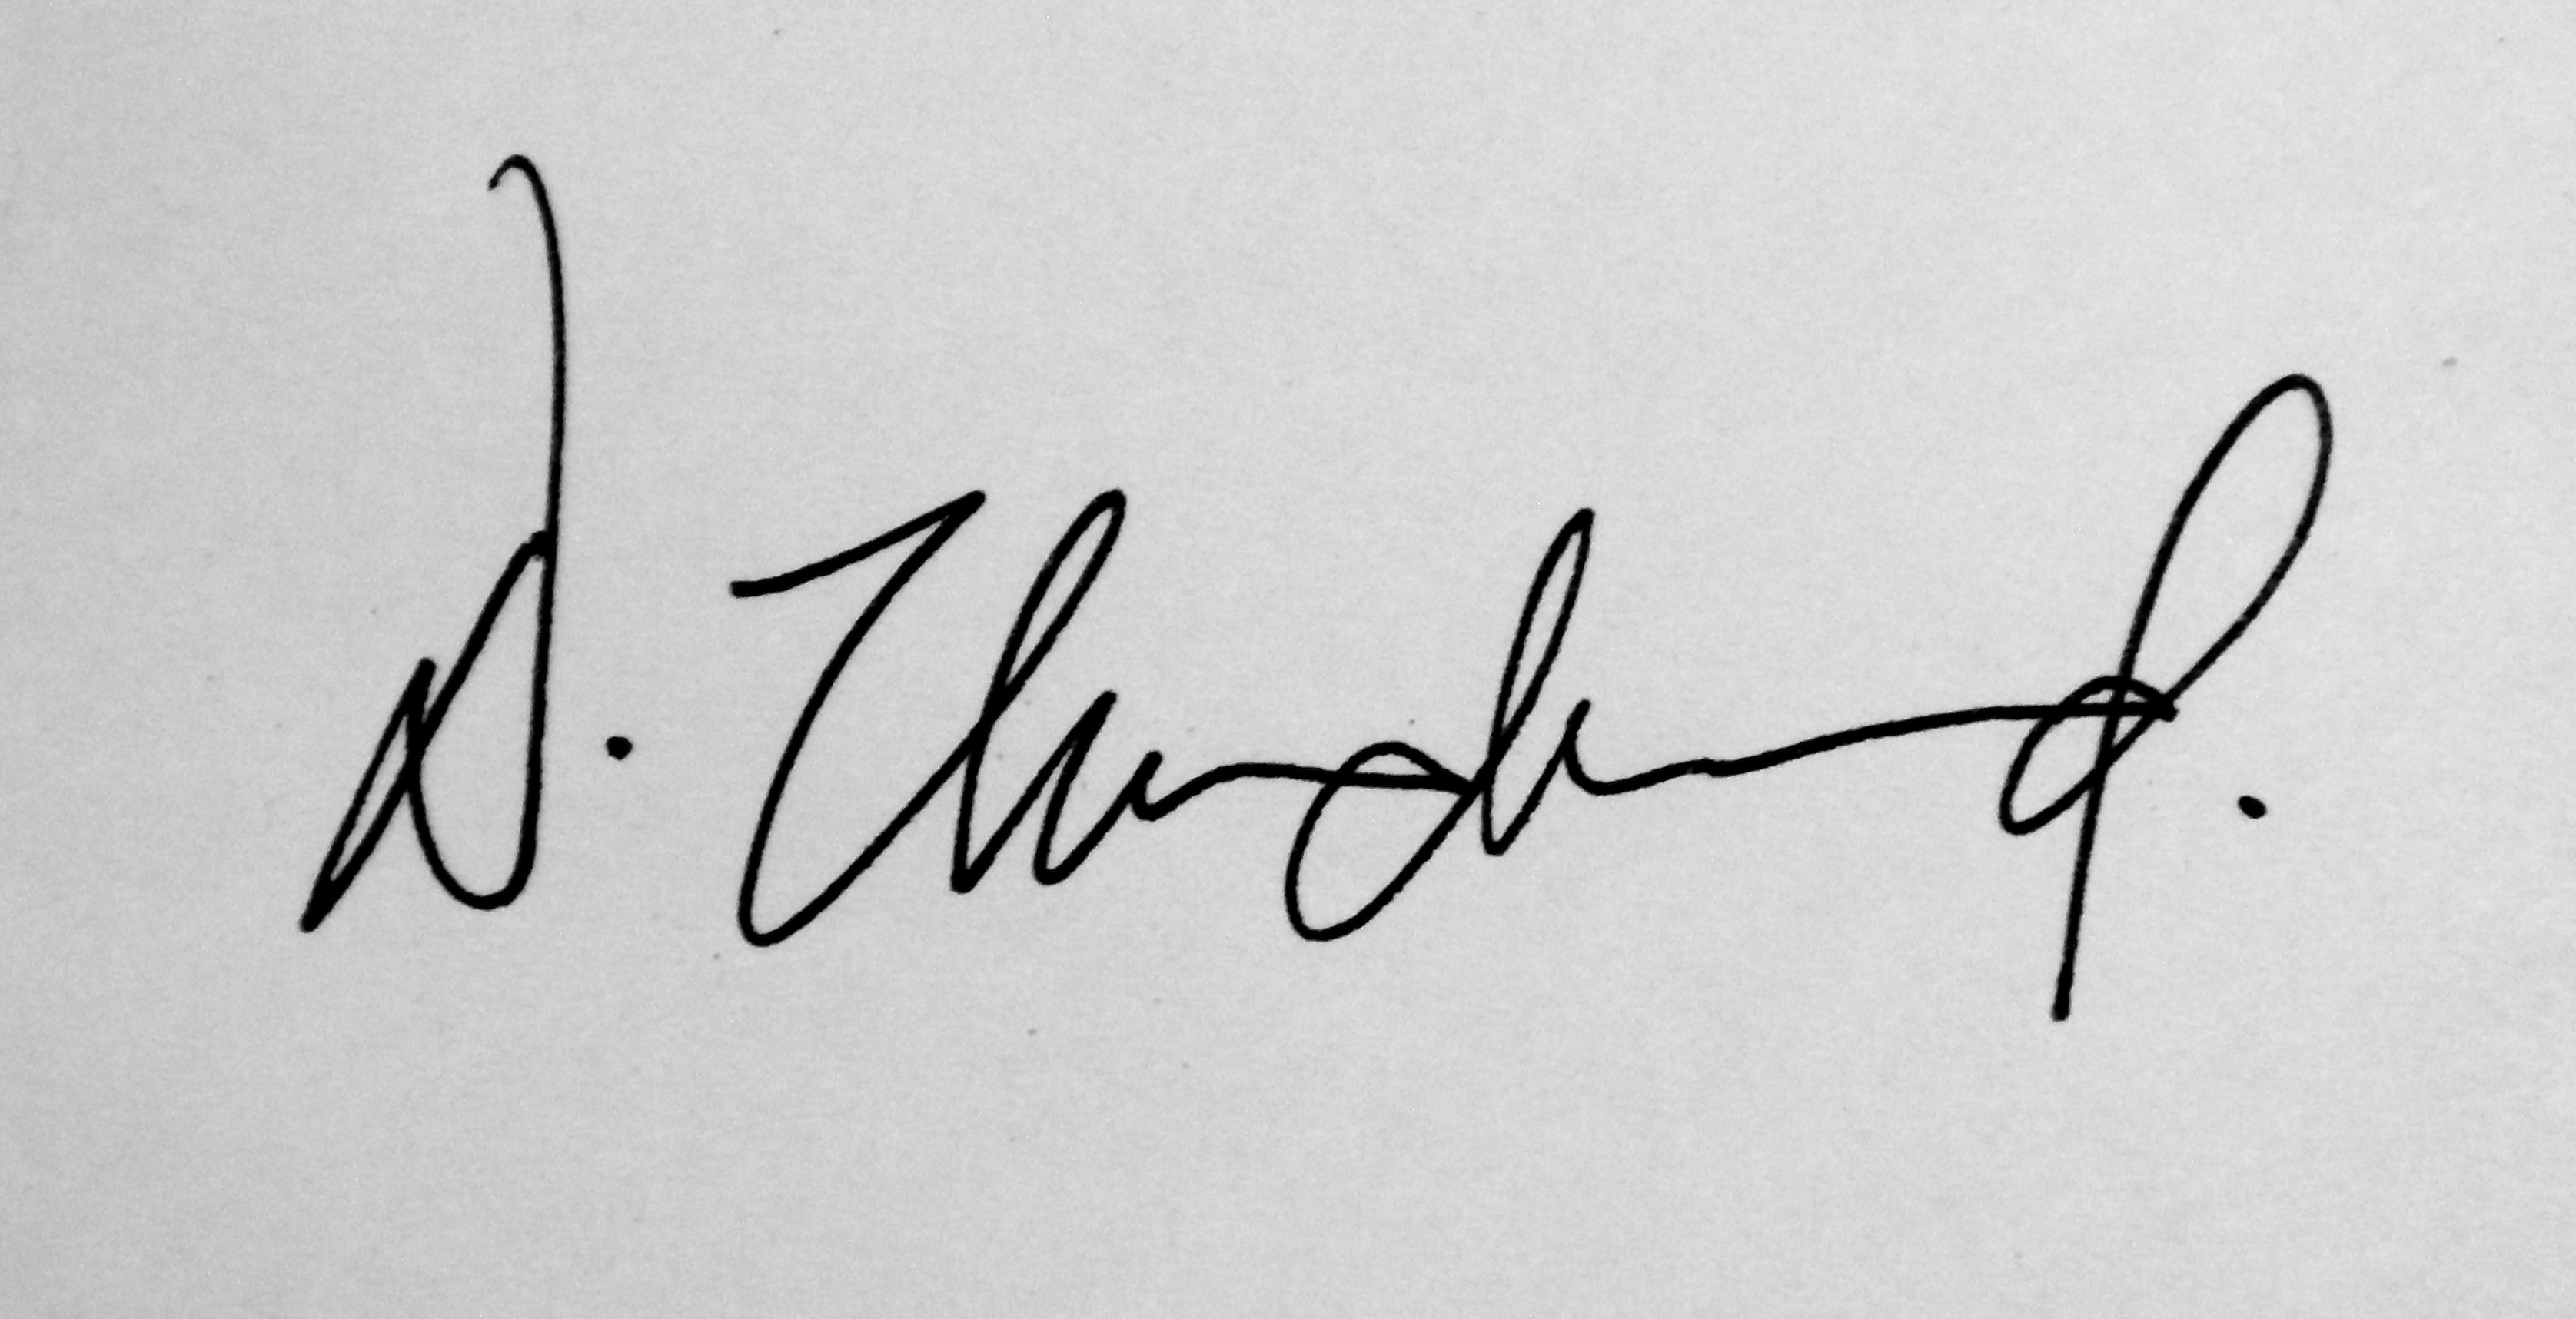 David Underwood's Signature